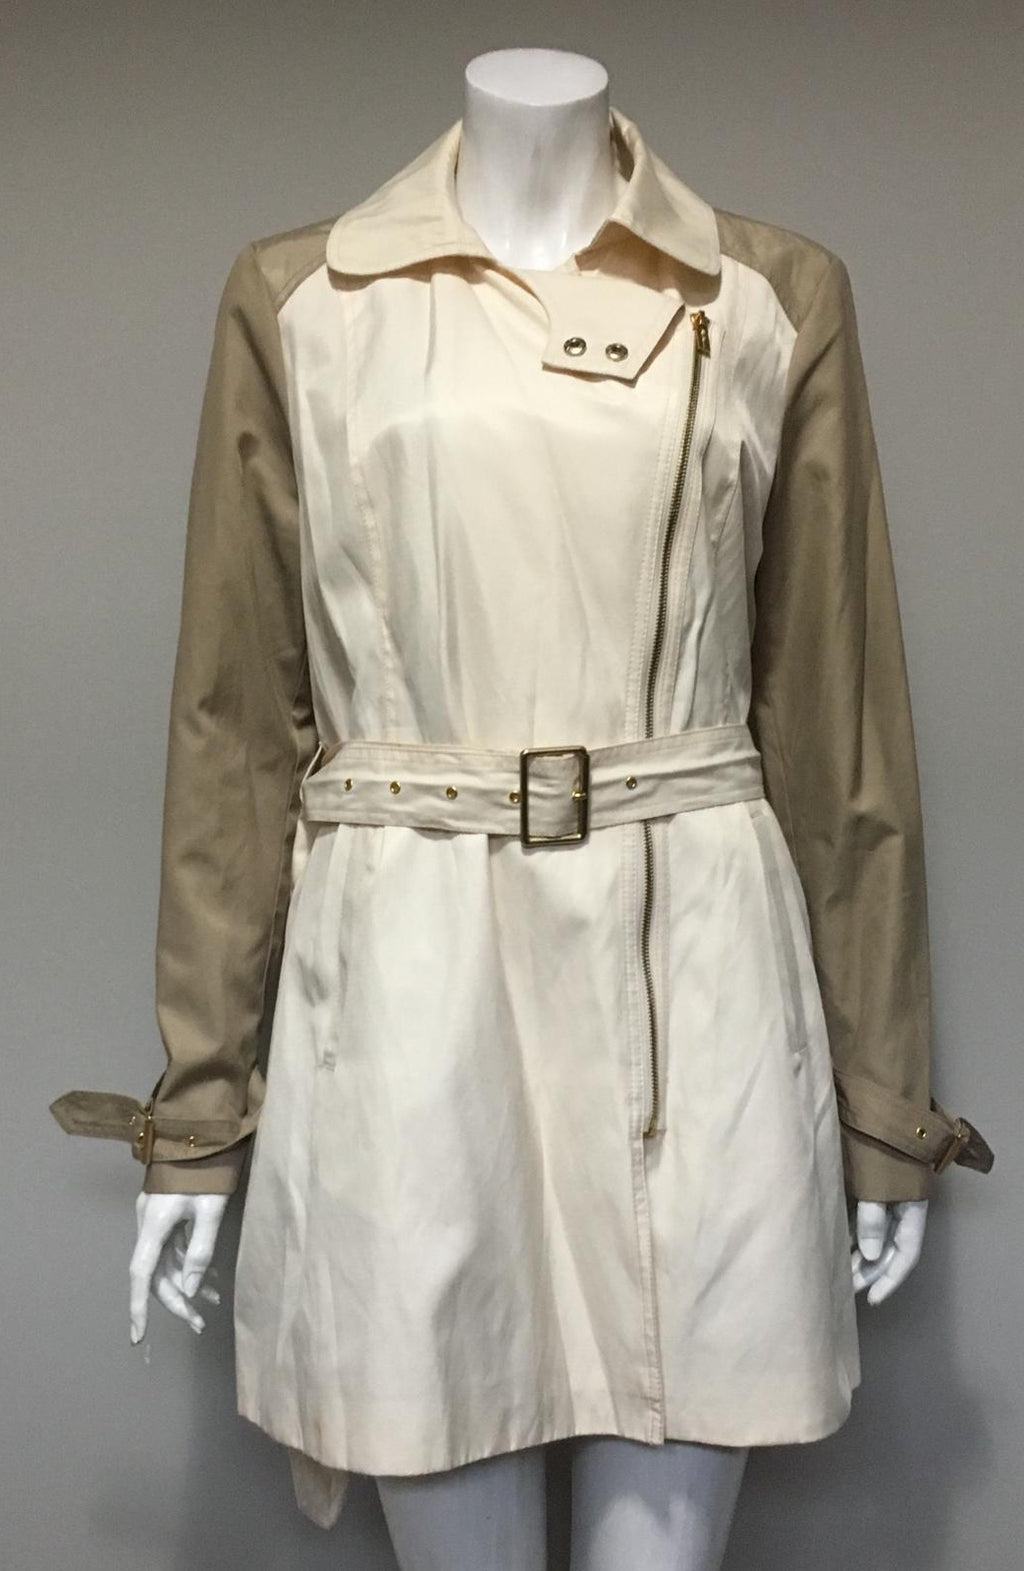 Kenneth Cole Cream & Tan Belted Jacket Size L